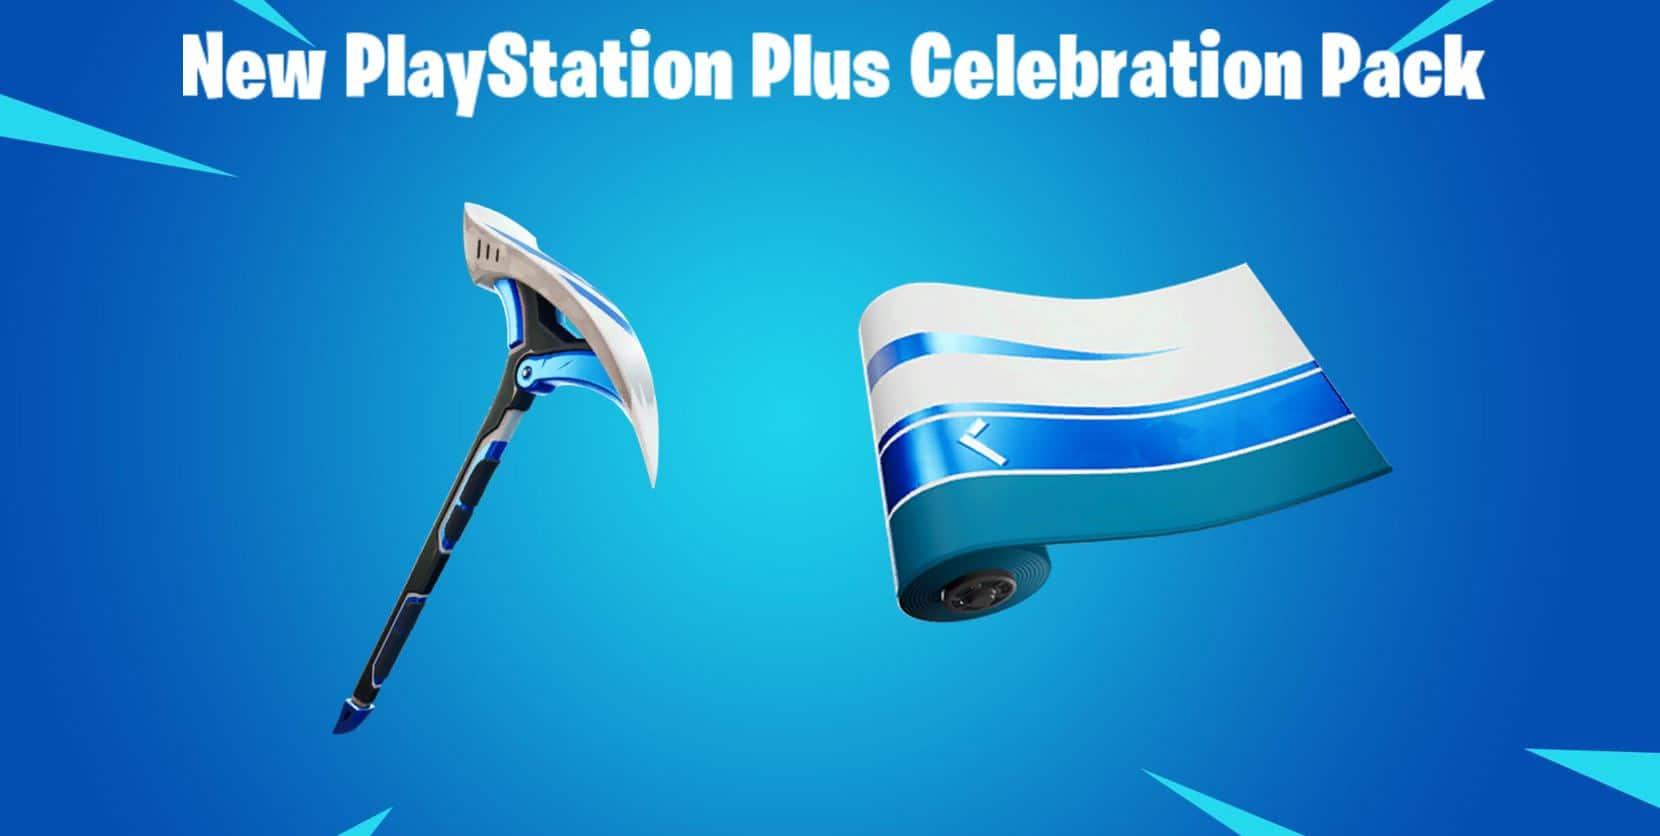 Paquete de celebración de PS Plus de Fortnite filtrado